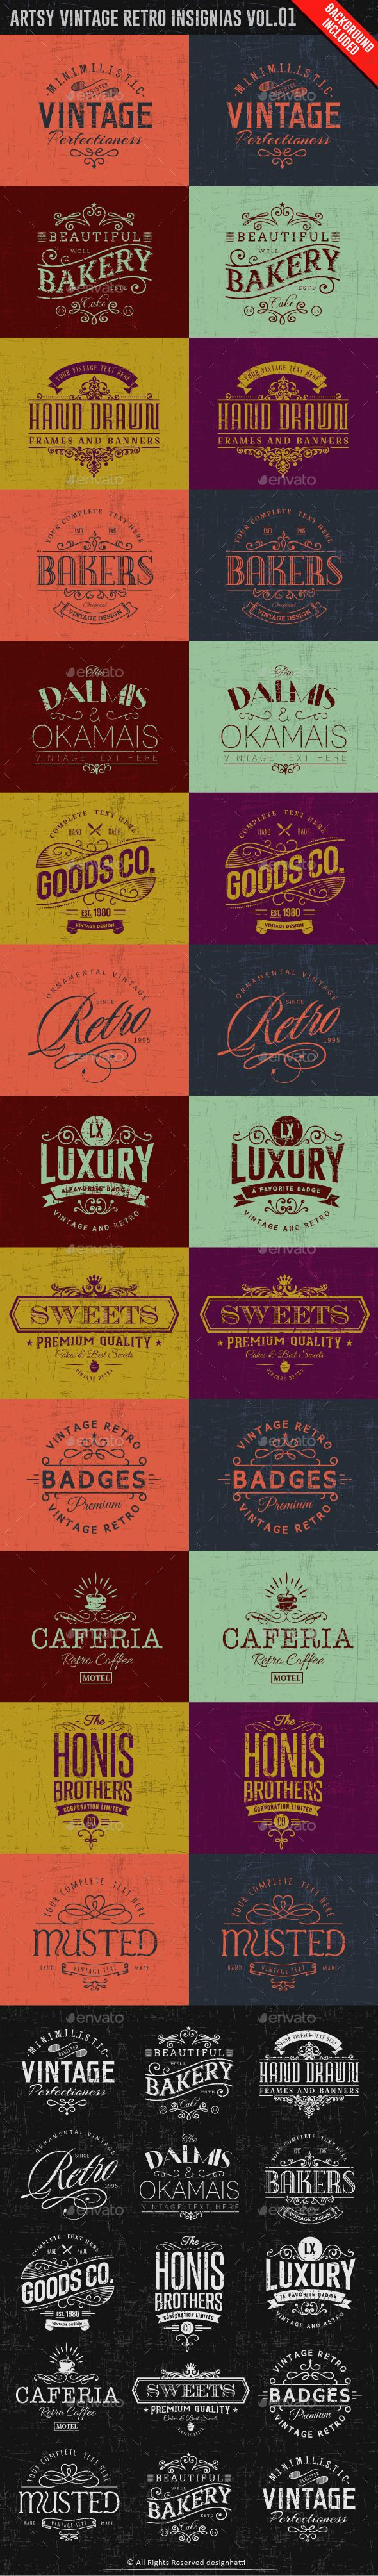 Artsy Vintage Retro Insignia and Logos   Buy and Download: http://graphicriver.net/item/artsy-vintage-retro-insignia-and-logos-vol01/9945396?ref=ksioks